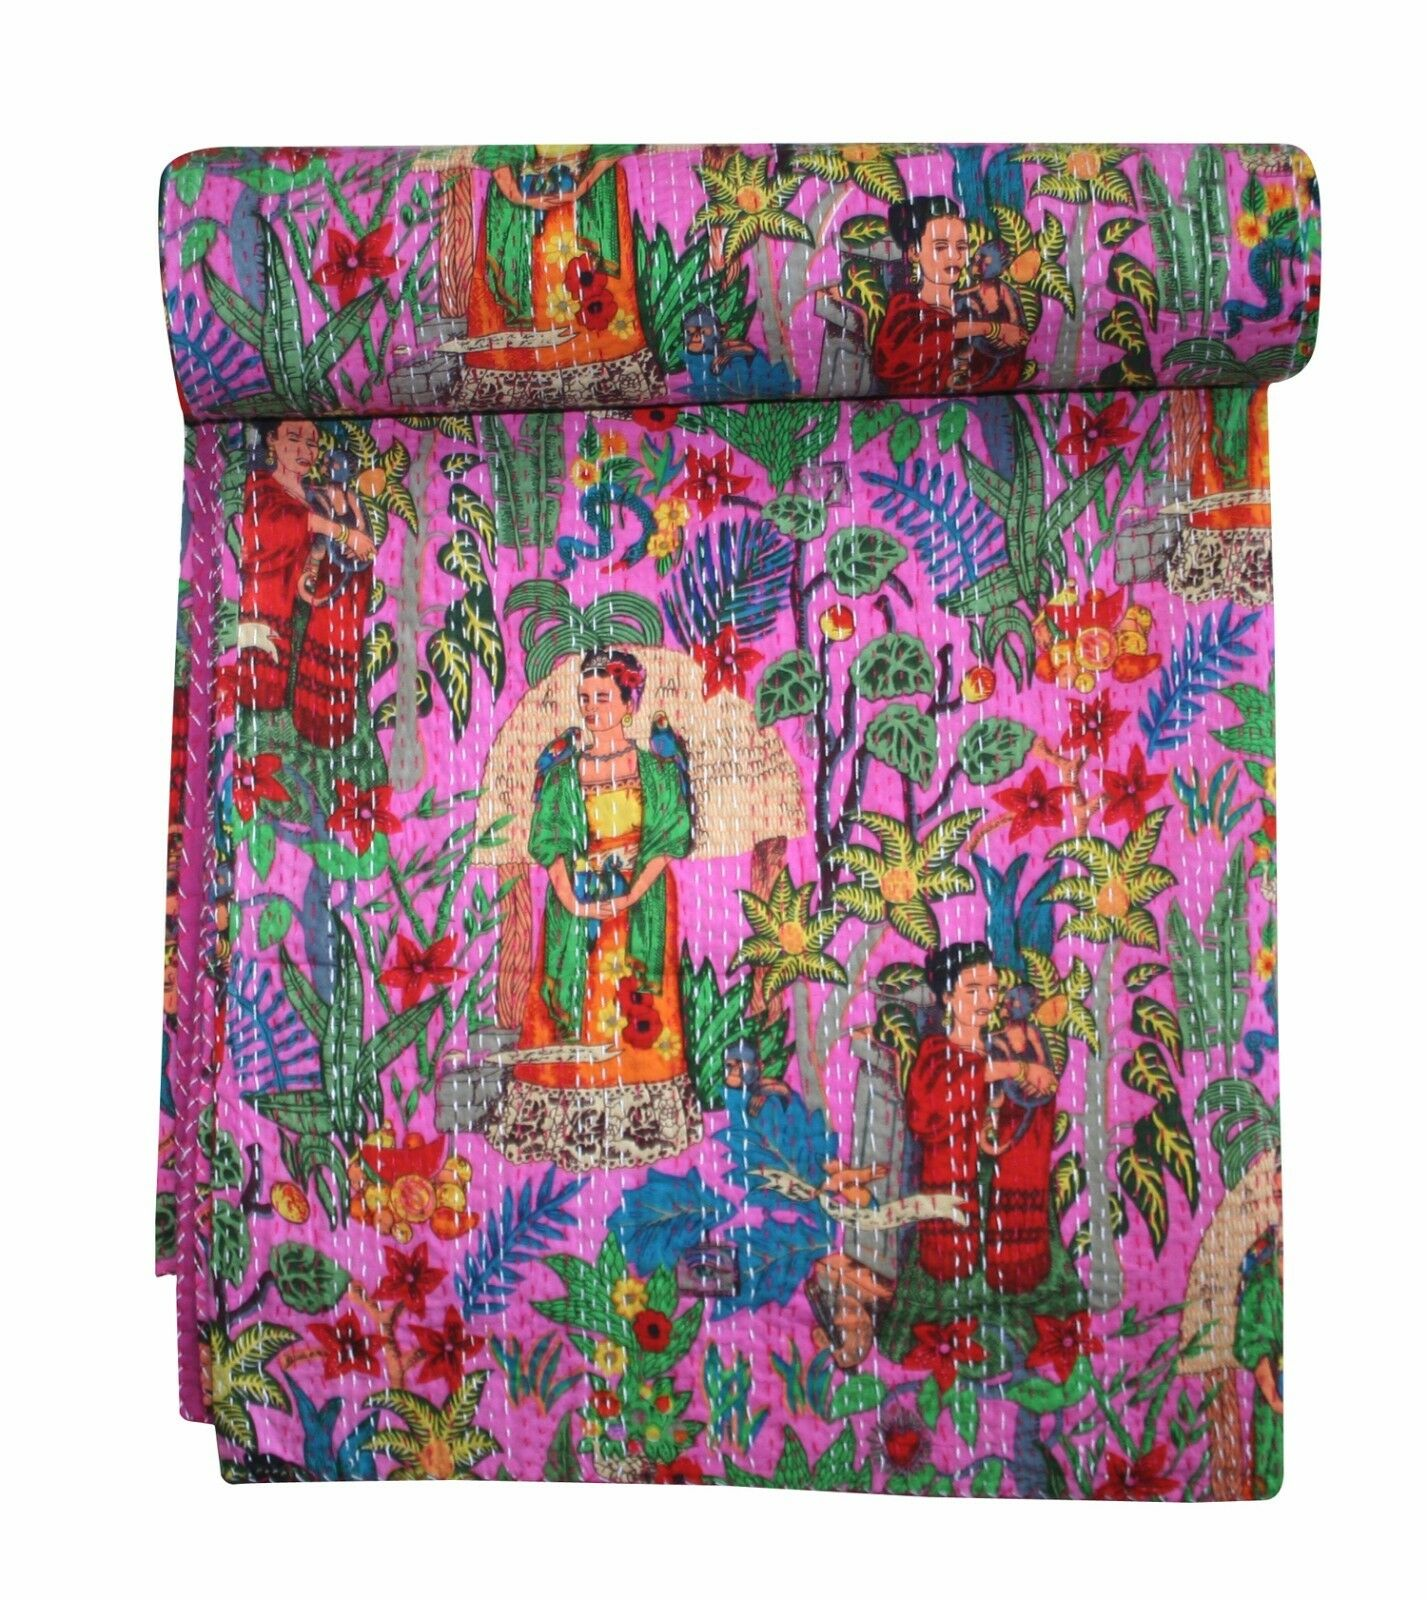 Pink Farida Kahlo Queen Print Kantha Quilt Bedspread Throw Blanket Bedding Rally